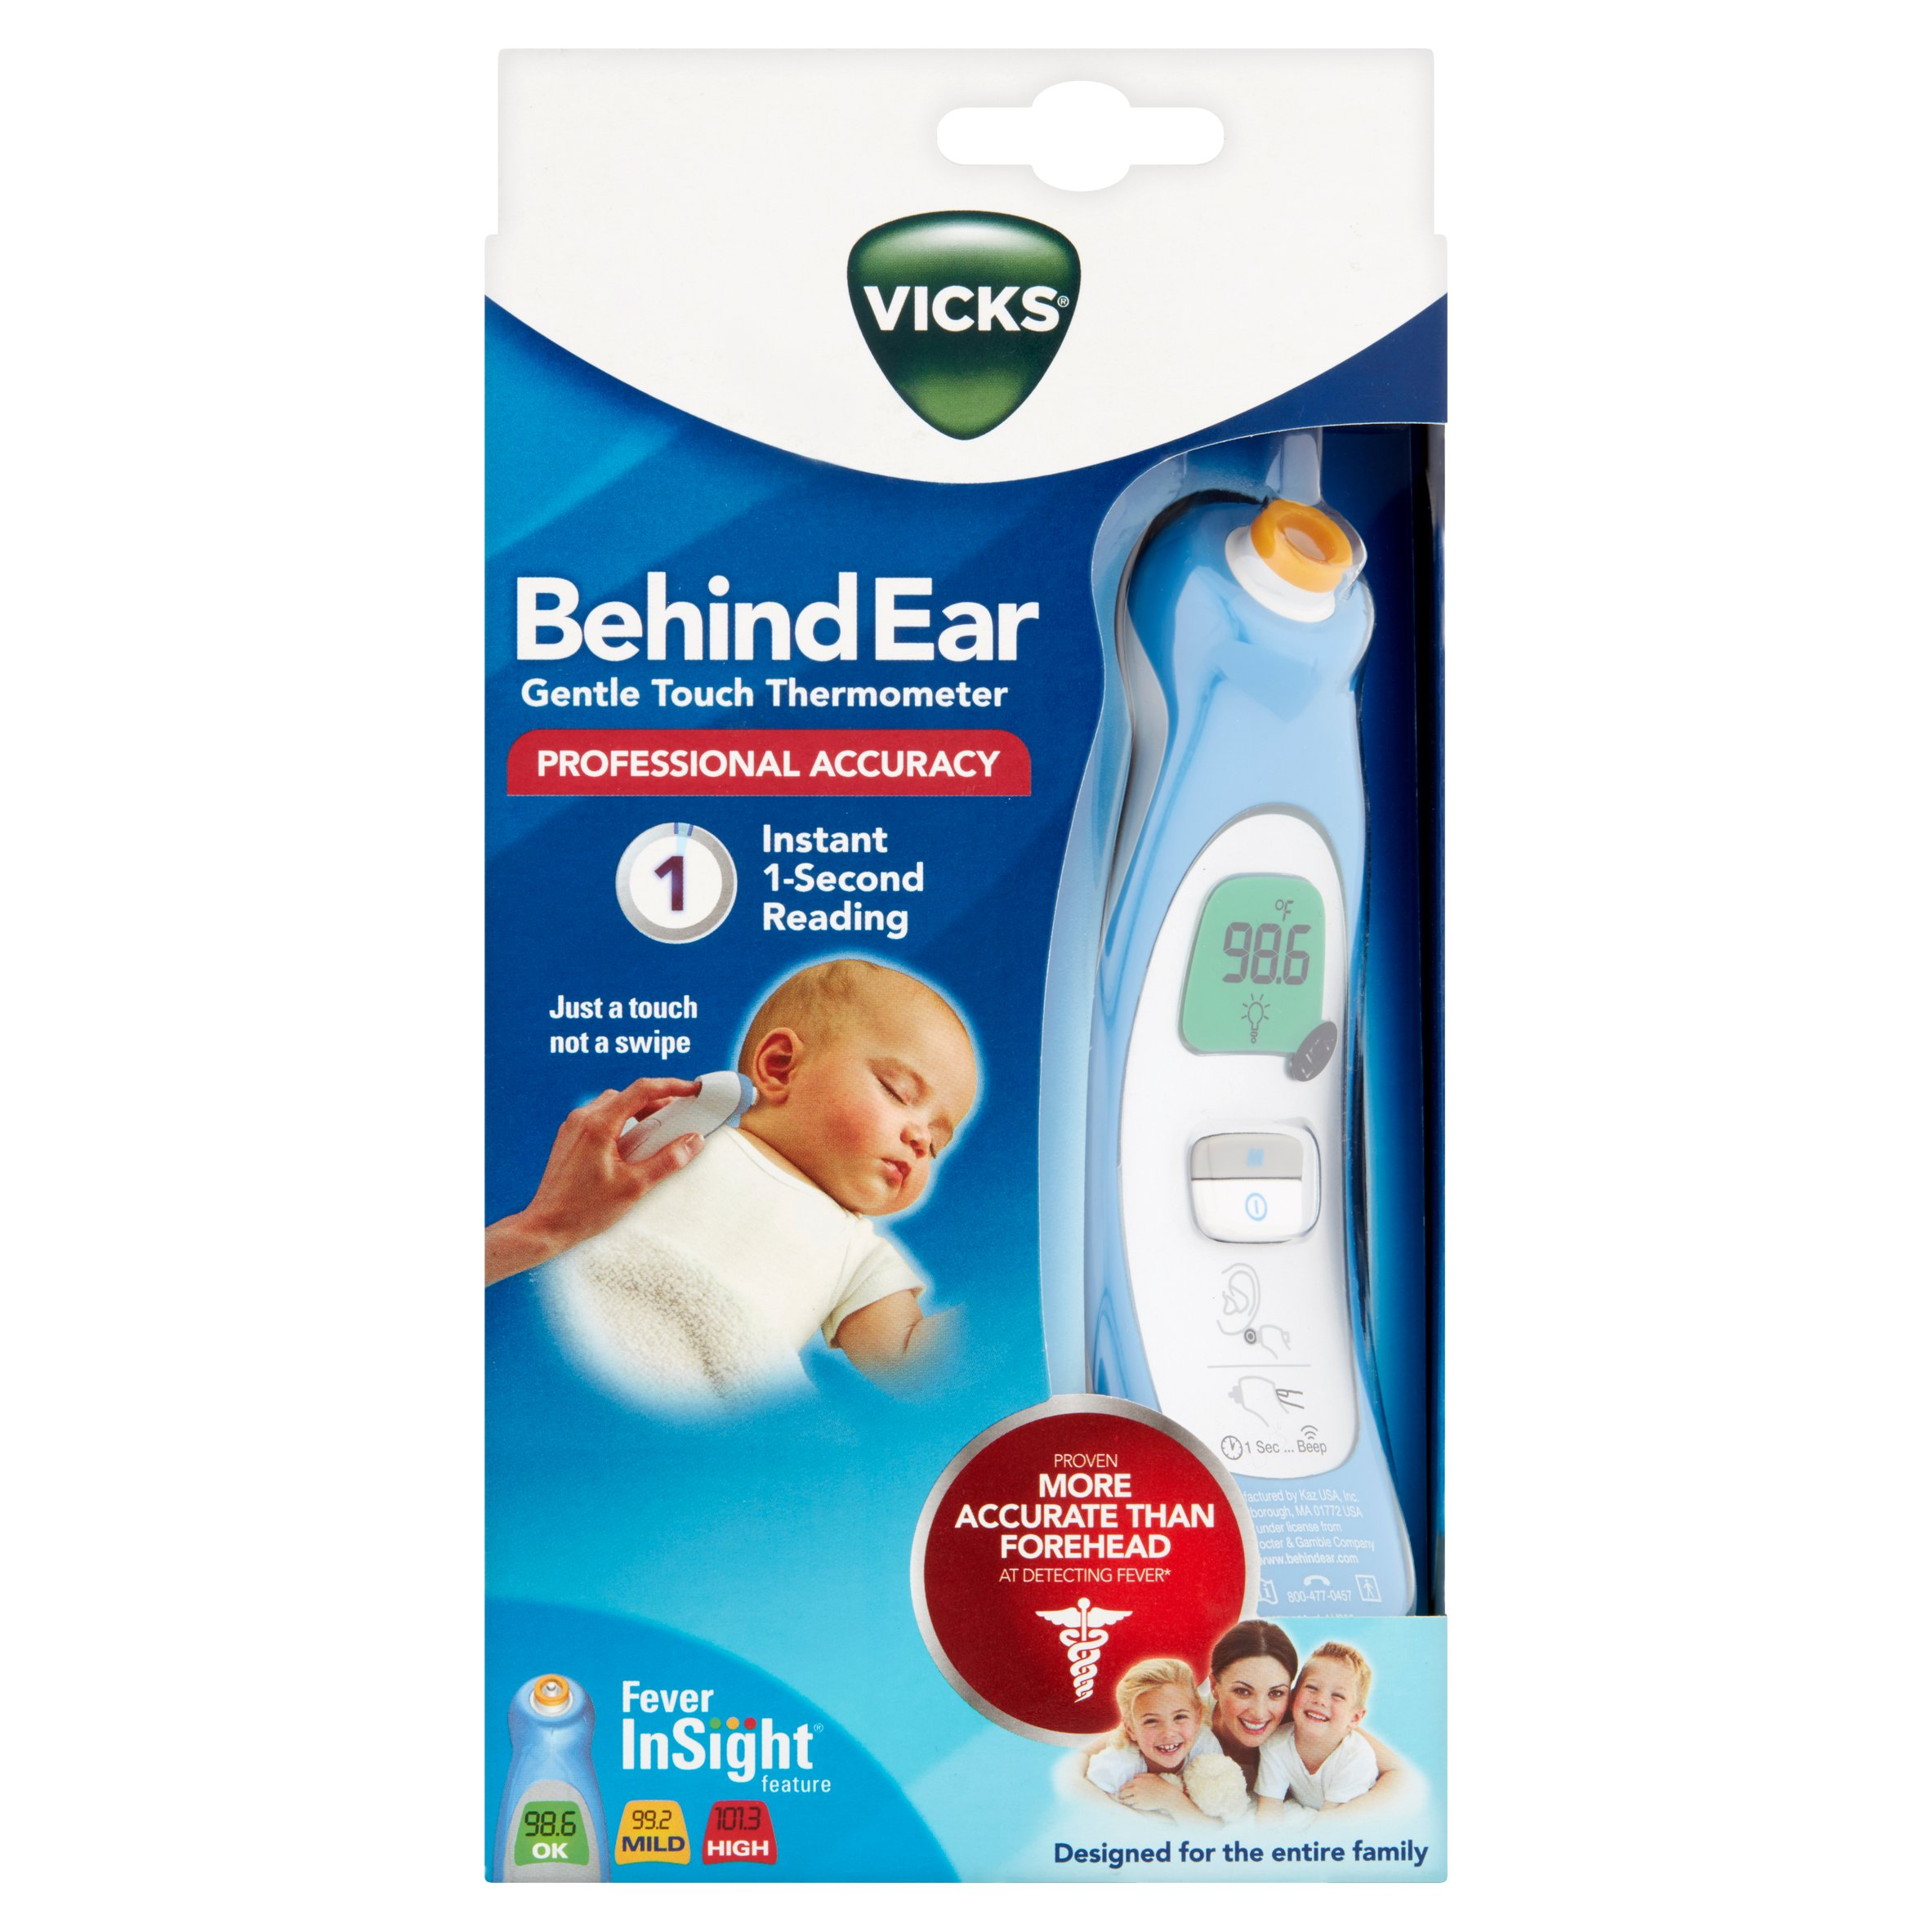 Vicks Behind Ear Gentle Touch Thermometer - Walmart.com